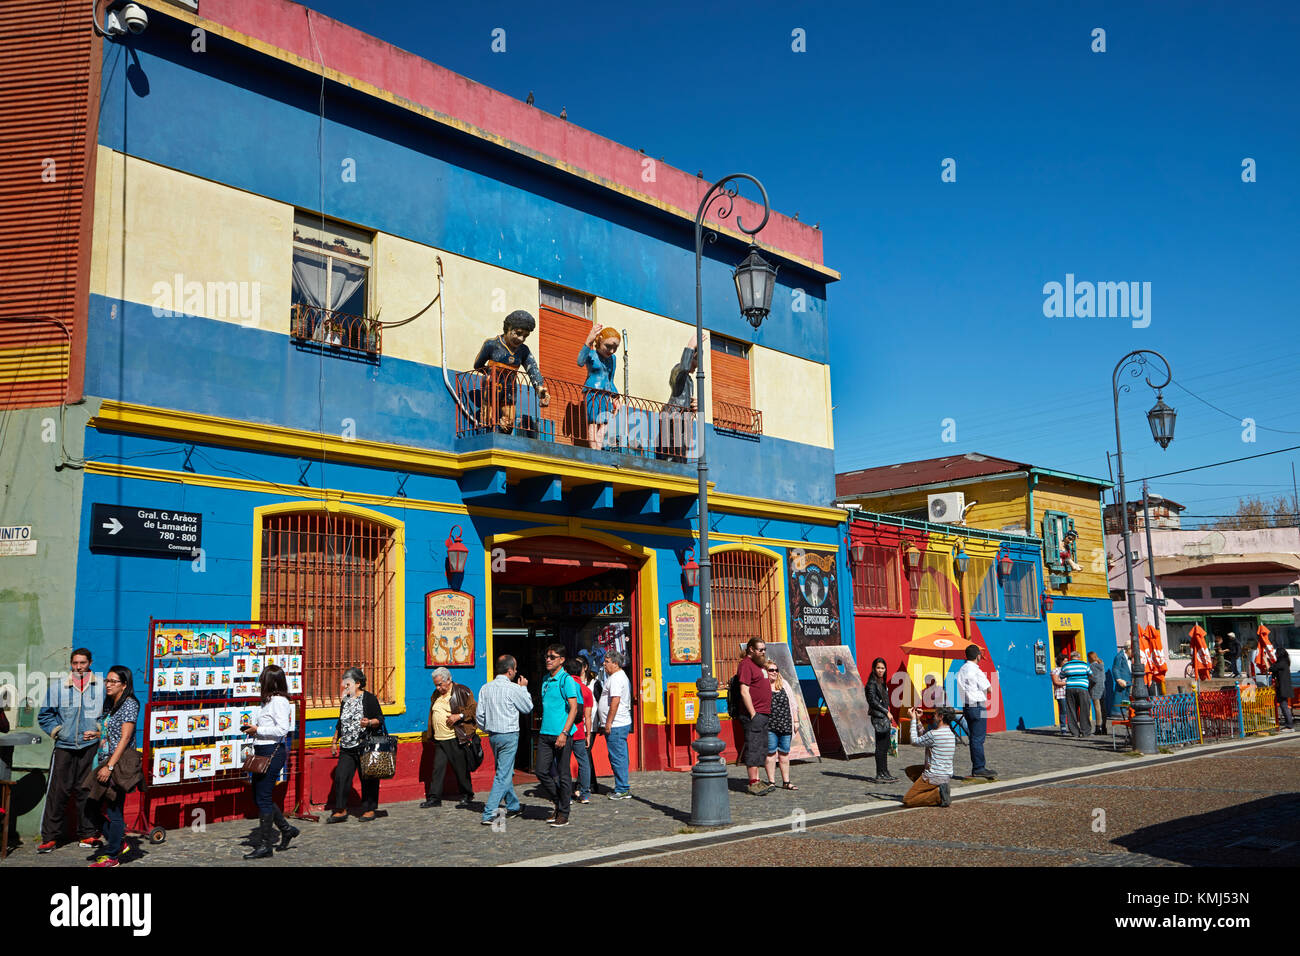 Tourists and souvenir shops, La Boca, Buenos Aires, Argentina, South America - Stock Image